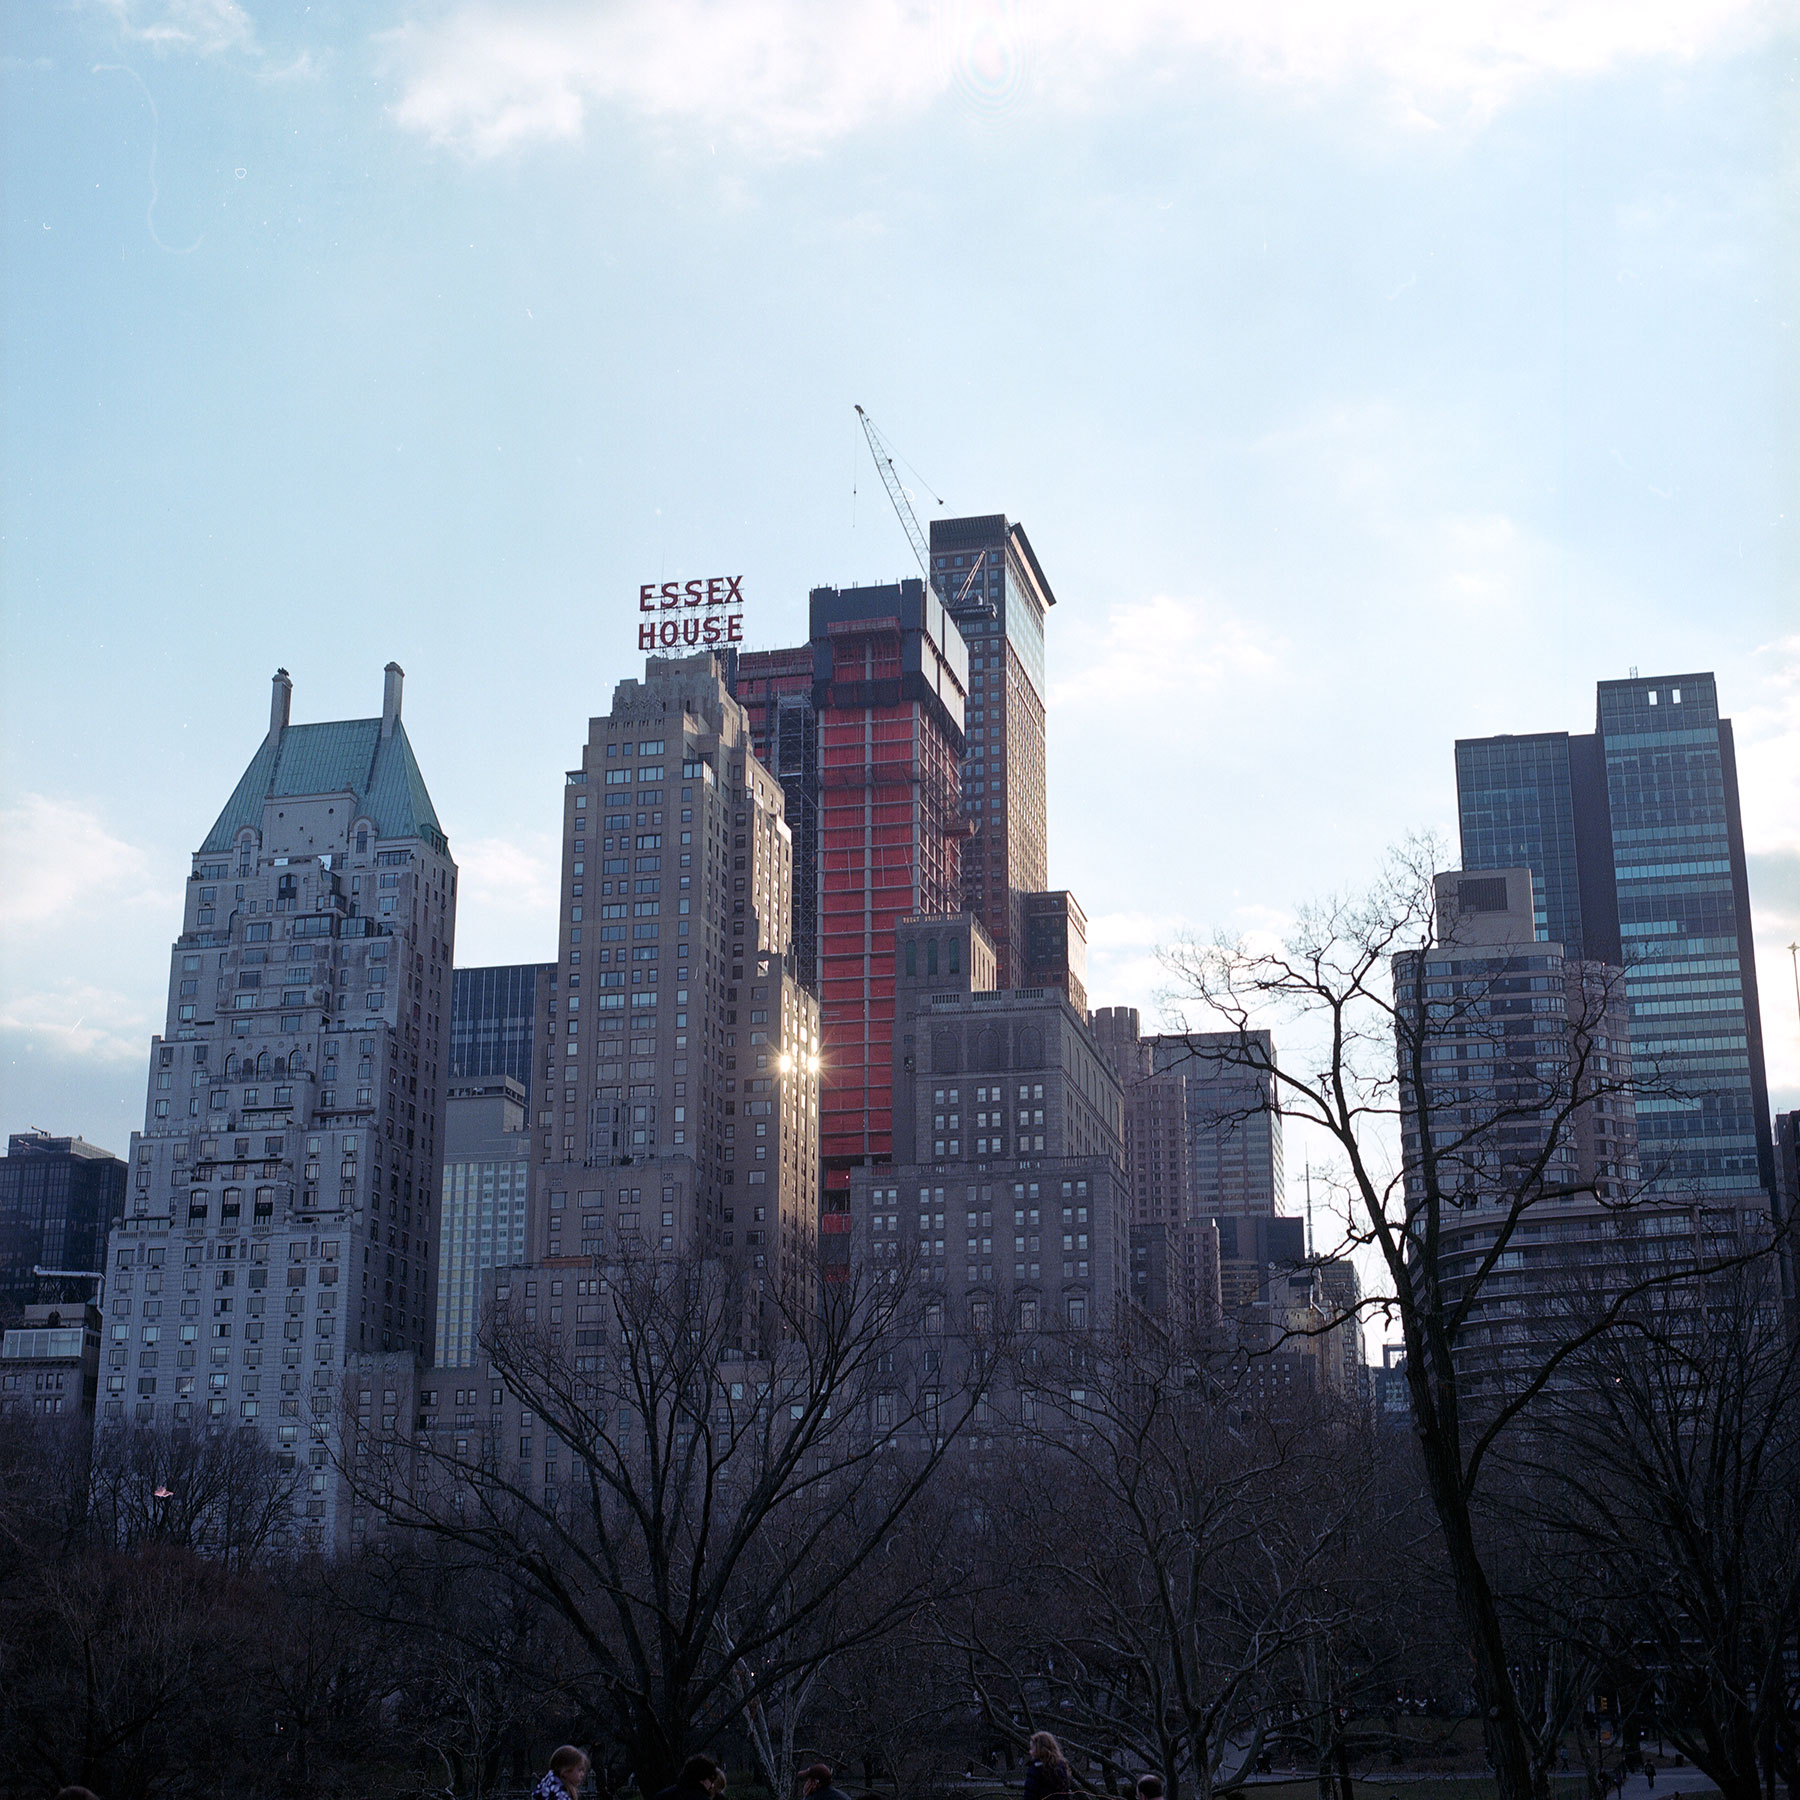 New York City Hasselblad500cm Kodak Portra 160nc film